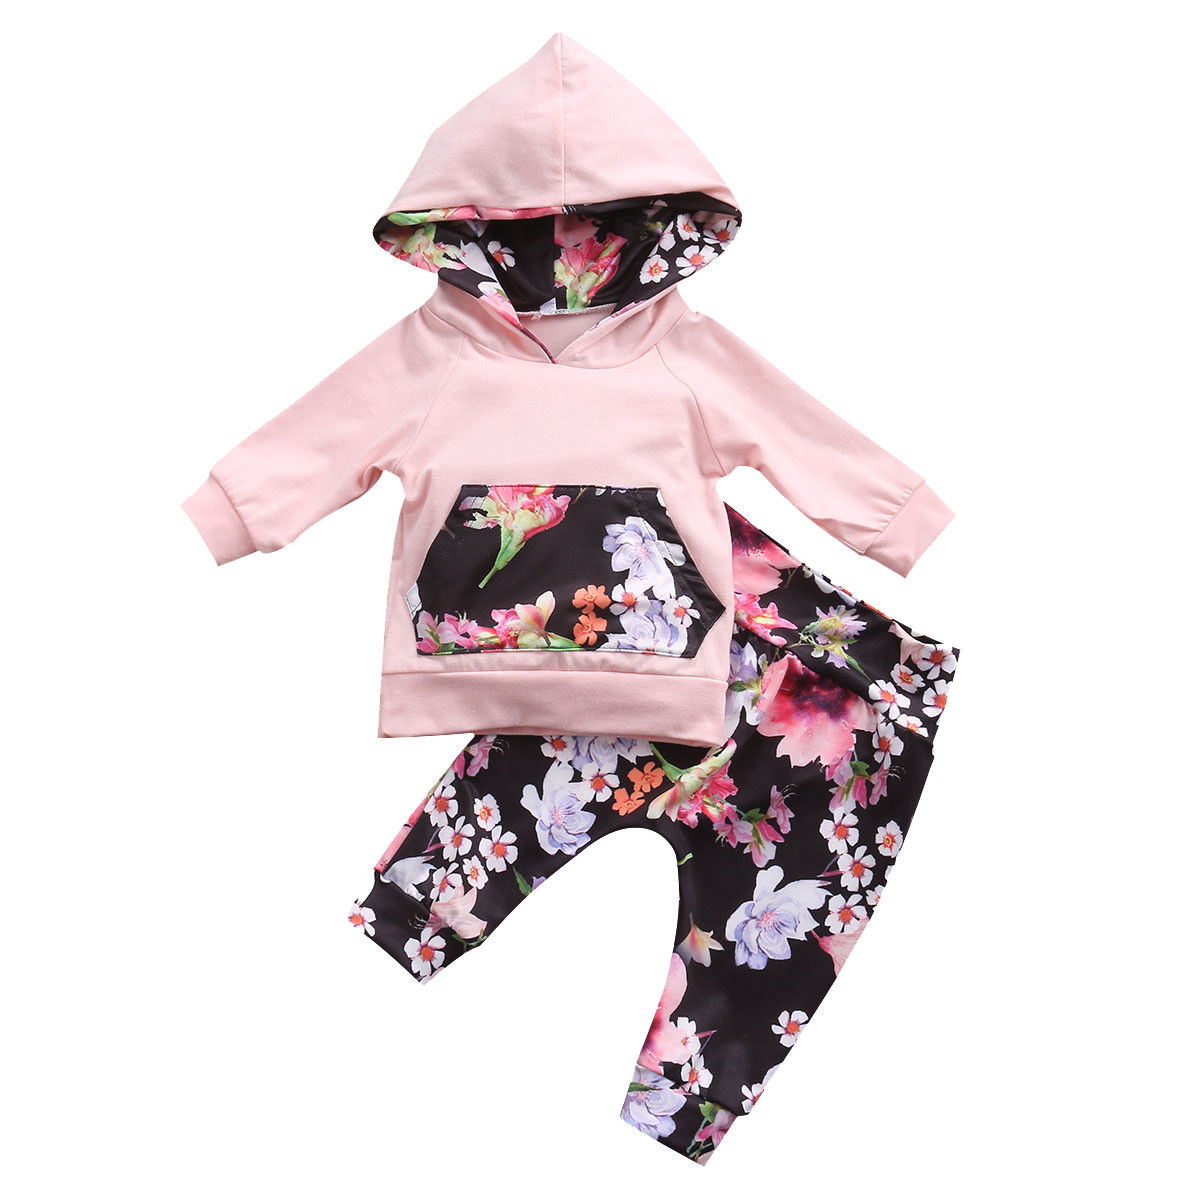 Infant Newborn Baby Girls Clothes Set Hooded Tops Long Sleeve T-shirt Floral Long Leggings Outfit Children Clothing Autumn 2PCs baby fox print clothes set newborn baby boy girl long sleeve t shirt tops pants 2017 new hot fall bebes outfit kids clothing set